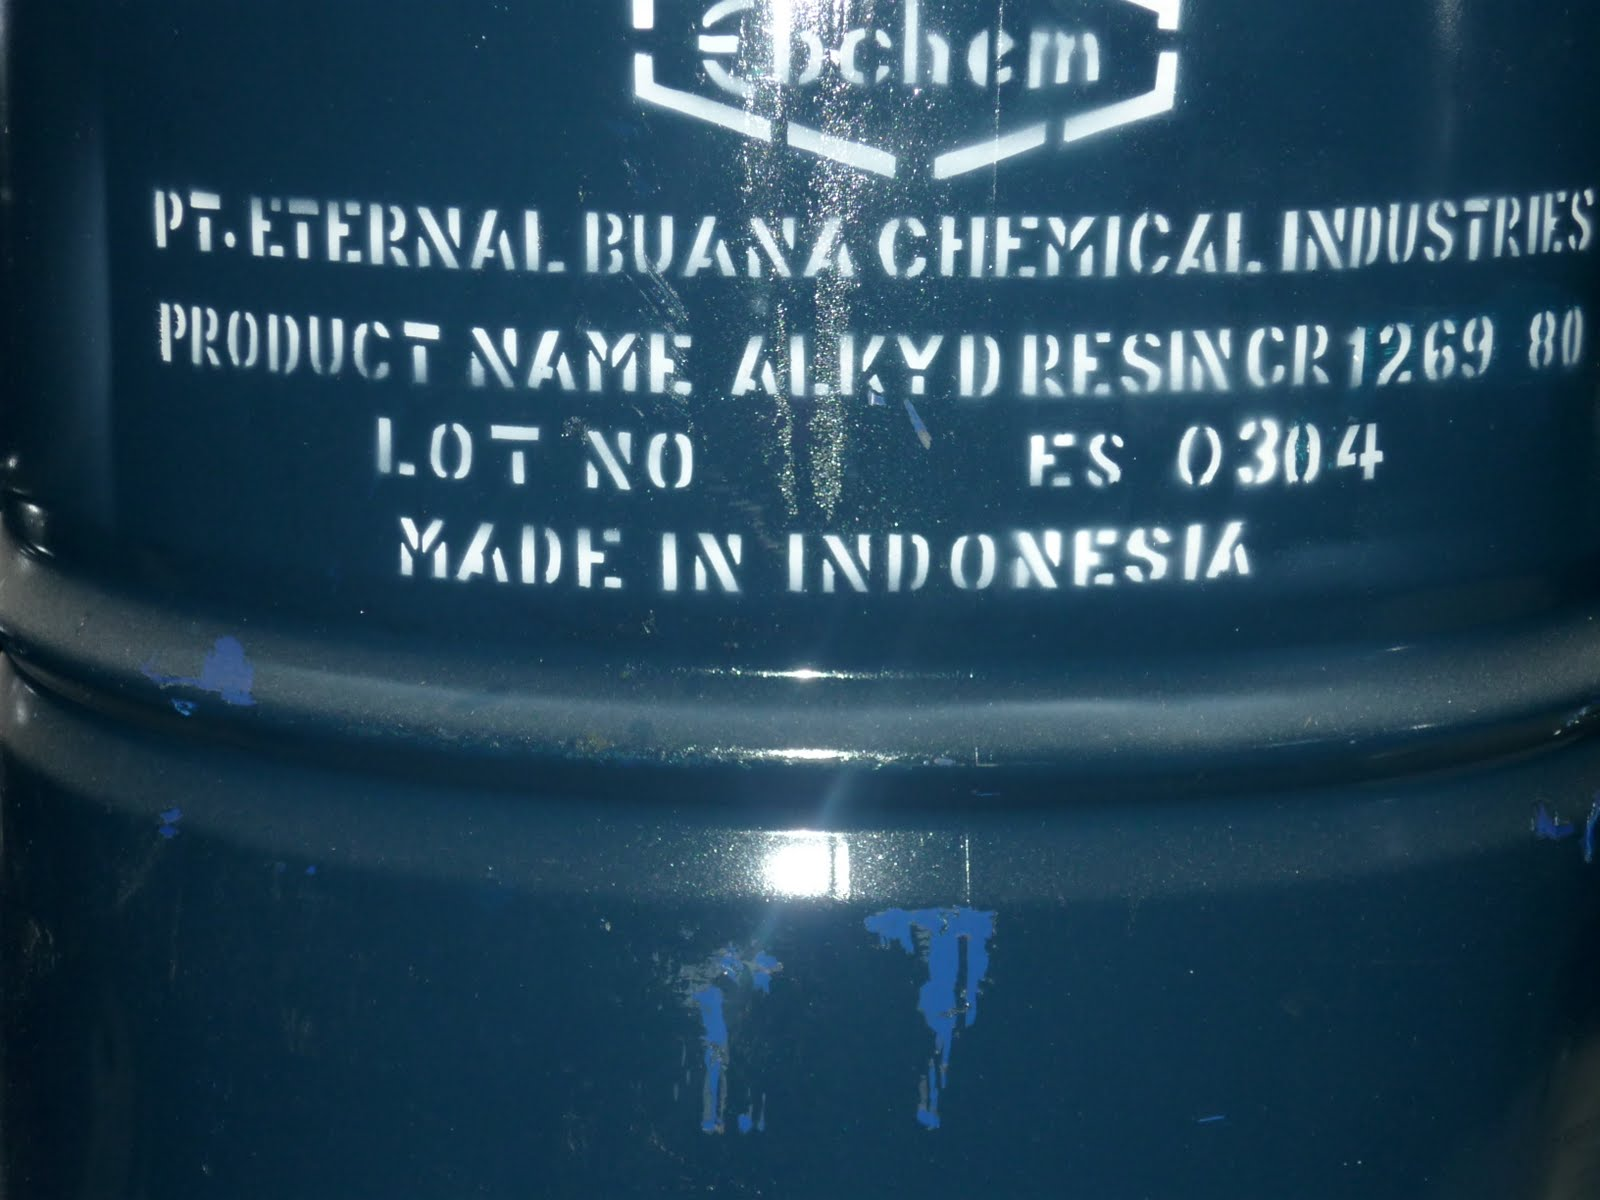 ALkyd resin CR 1269 - X -80